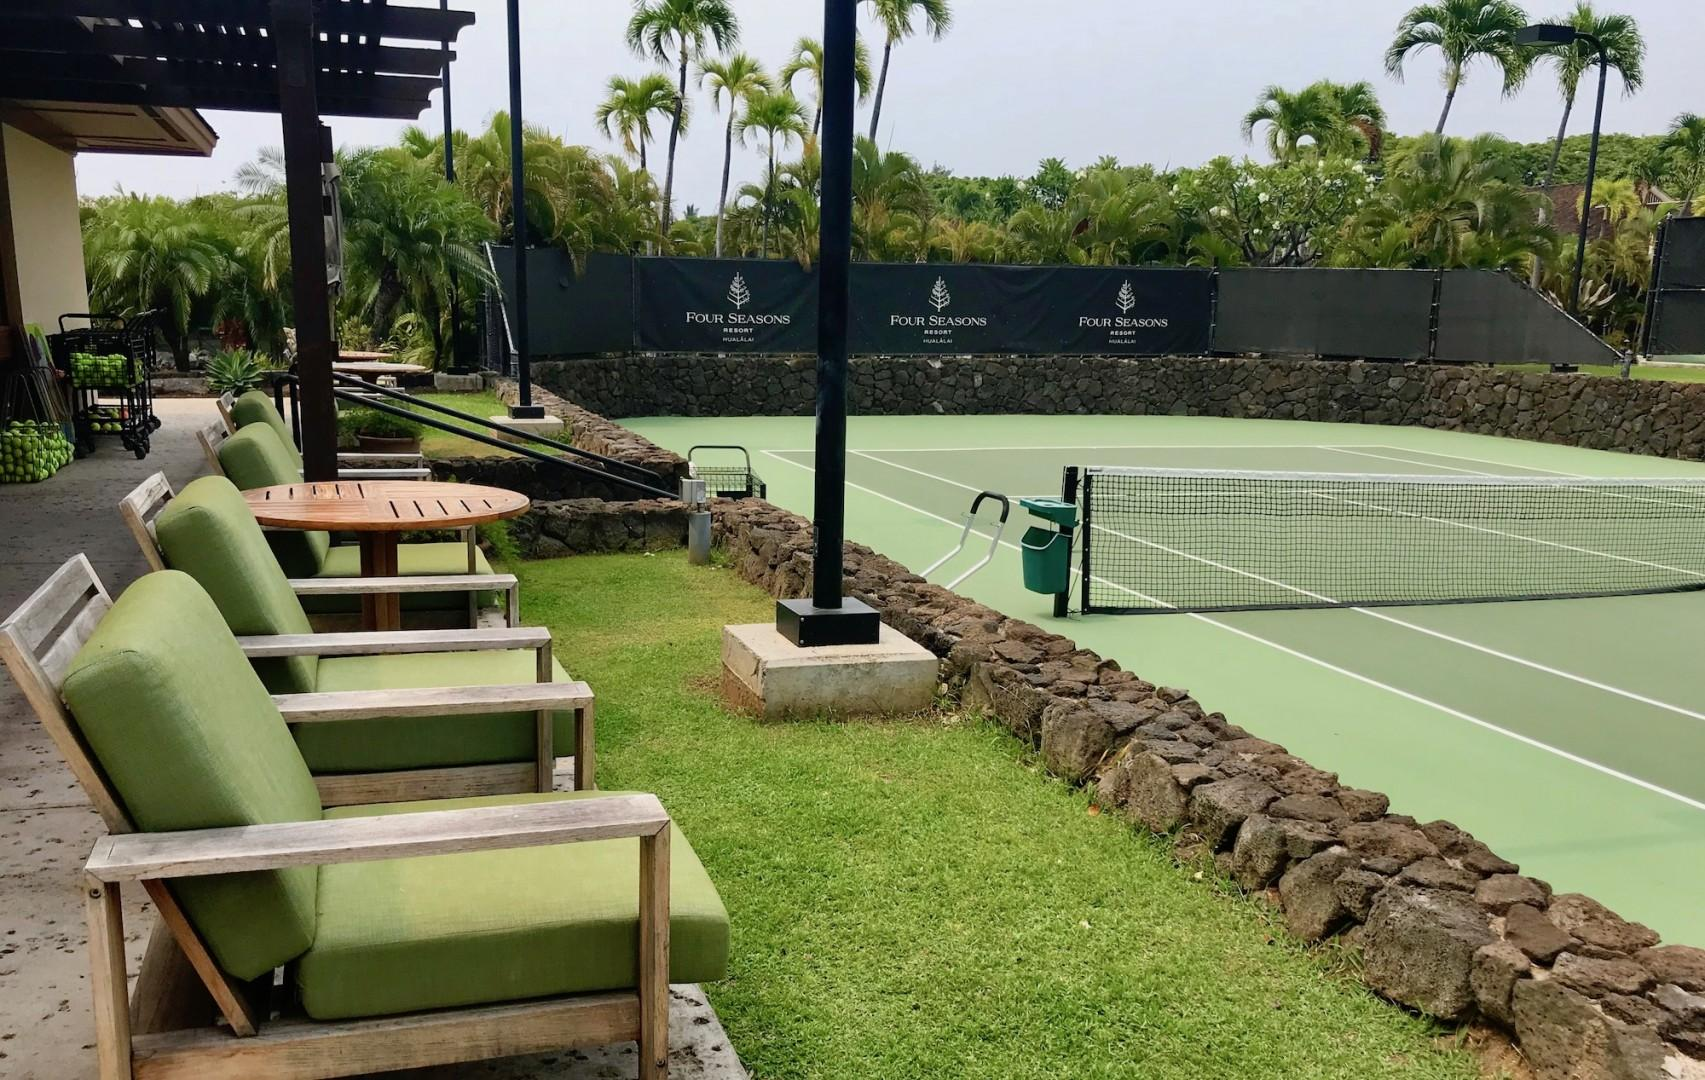 Four Seasons Resort tennis courts.